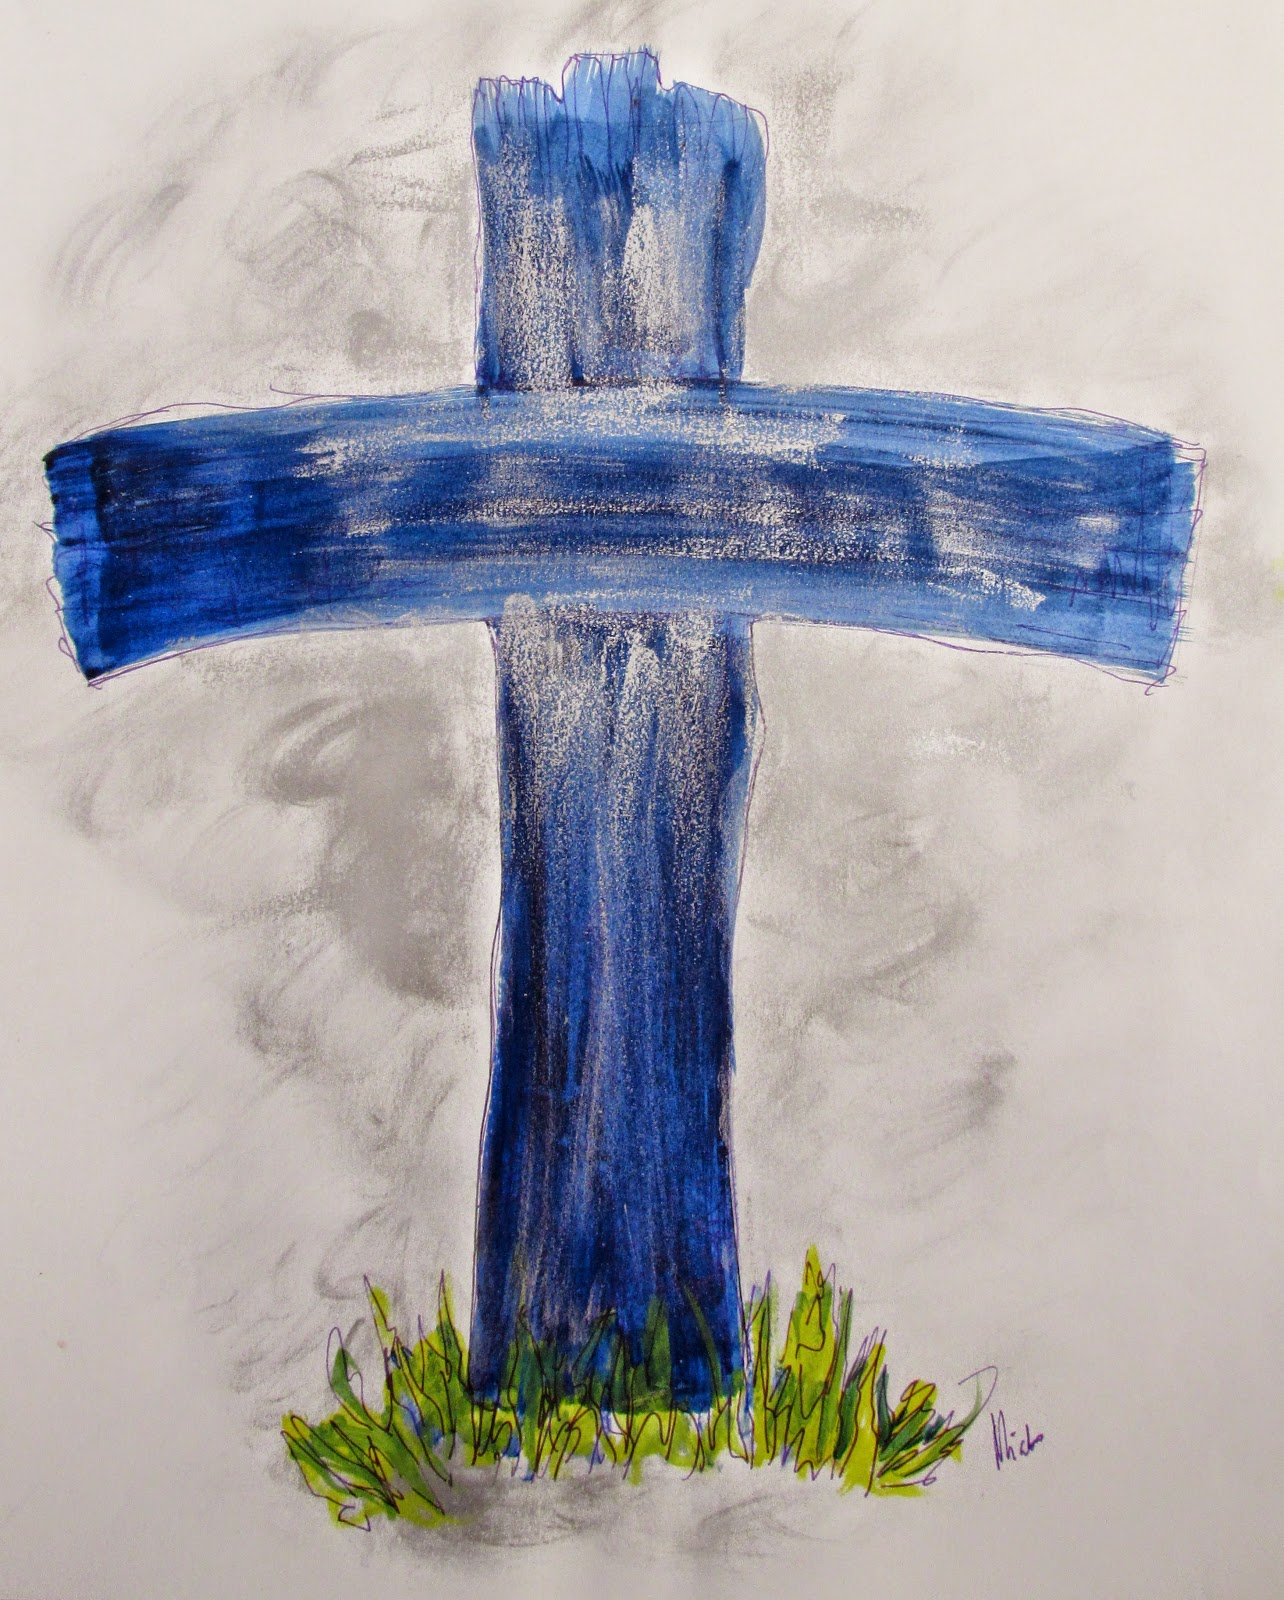 Artmiabo AN ILLUSTRATION OF THE OLD RUGGED CROSS BY MIABO ENYADIKE